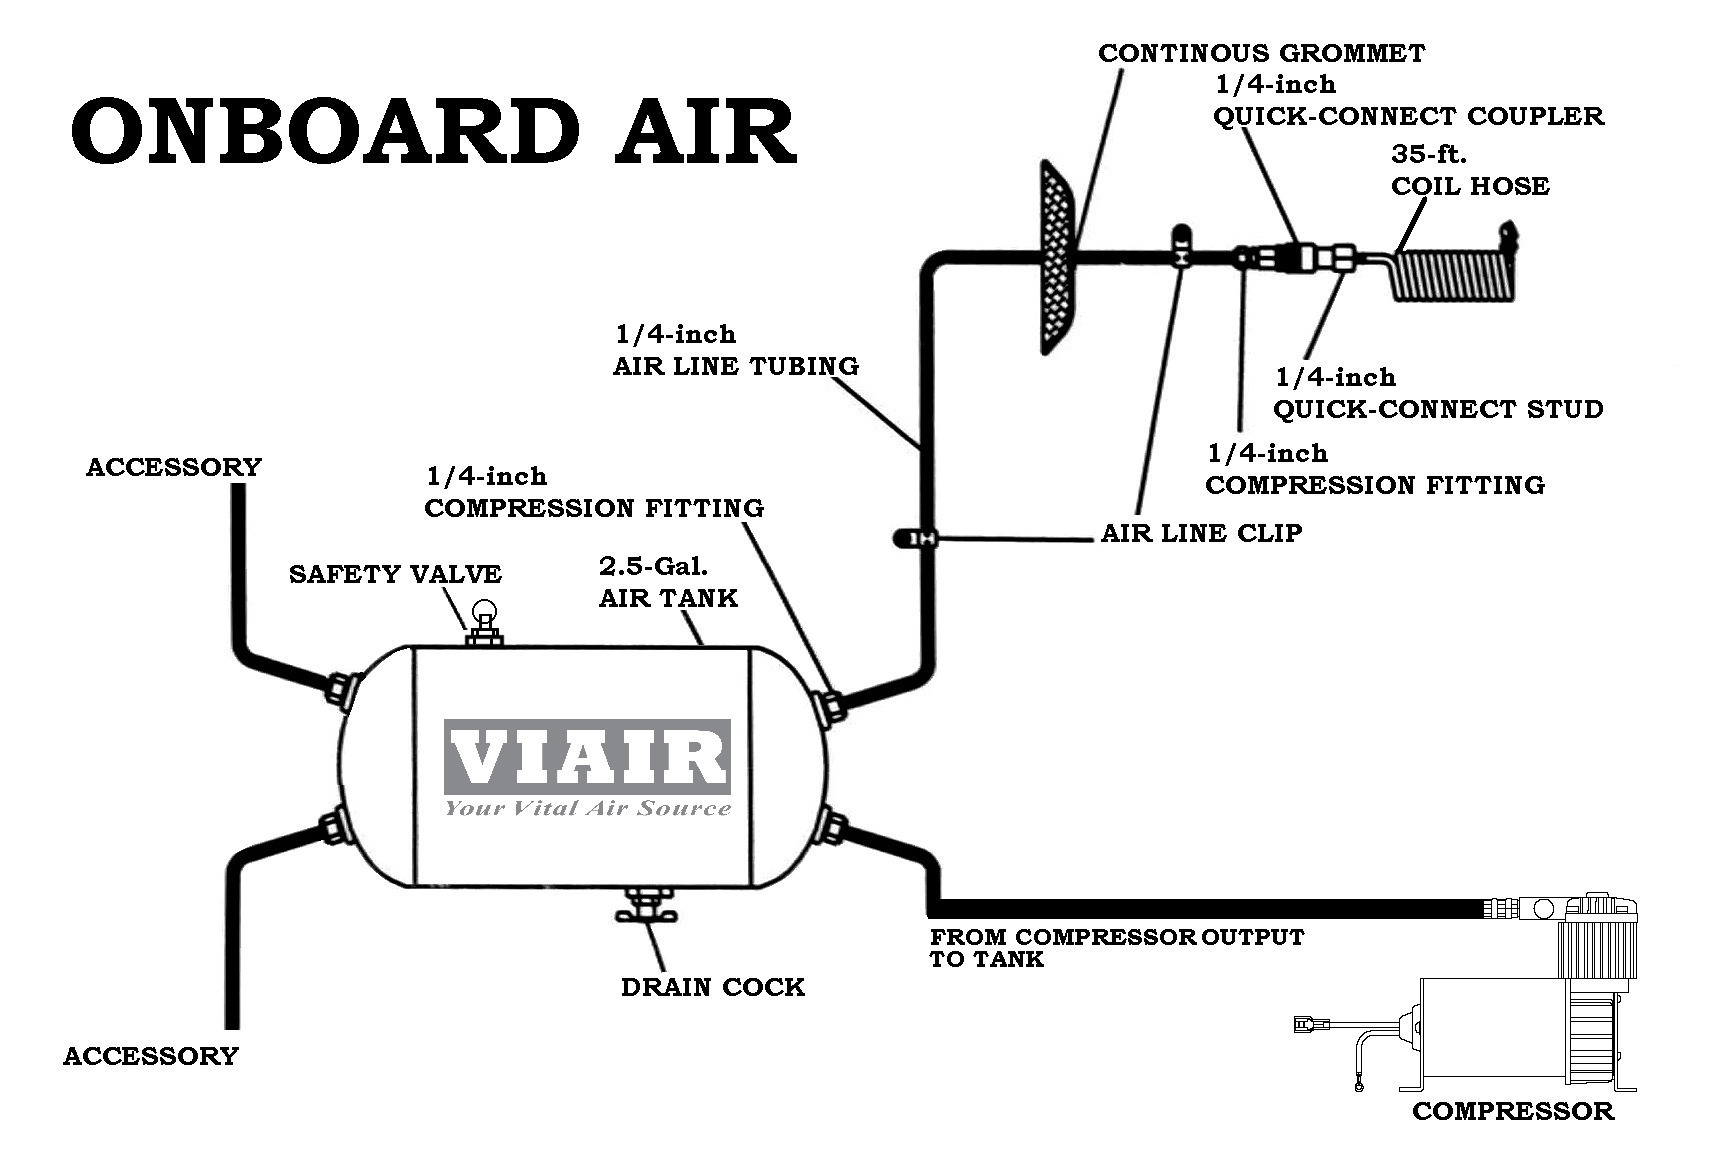 onboard_air atv horn wiring diagram atv free wiring diagrams readingrat net 12 volt air compressor wiring diagram at bayanpartner.co